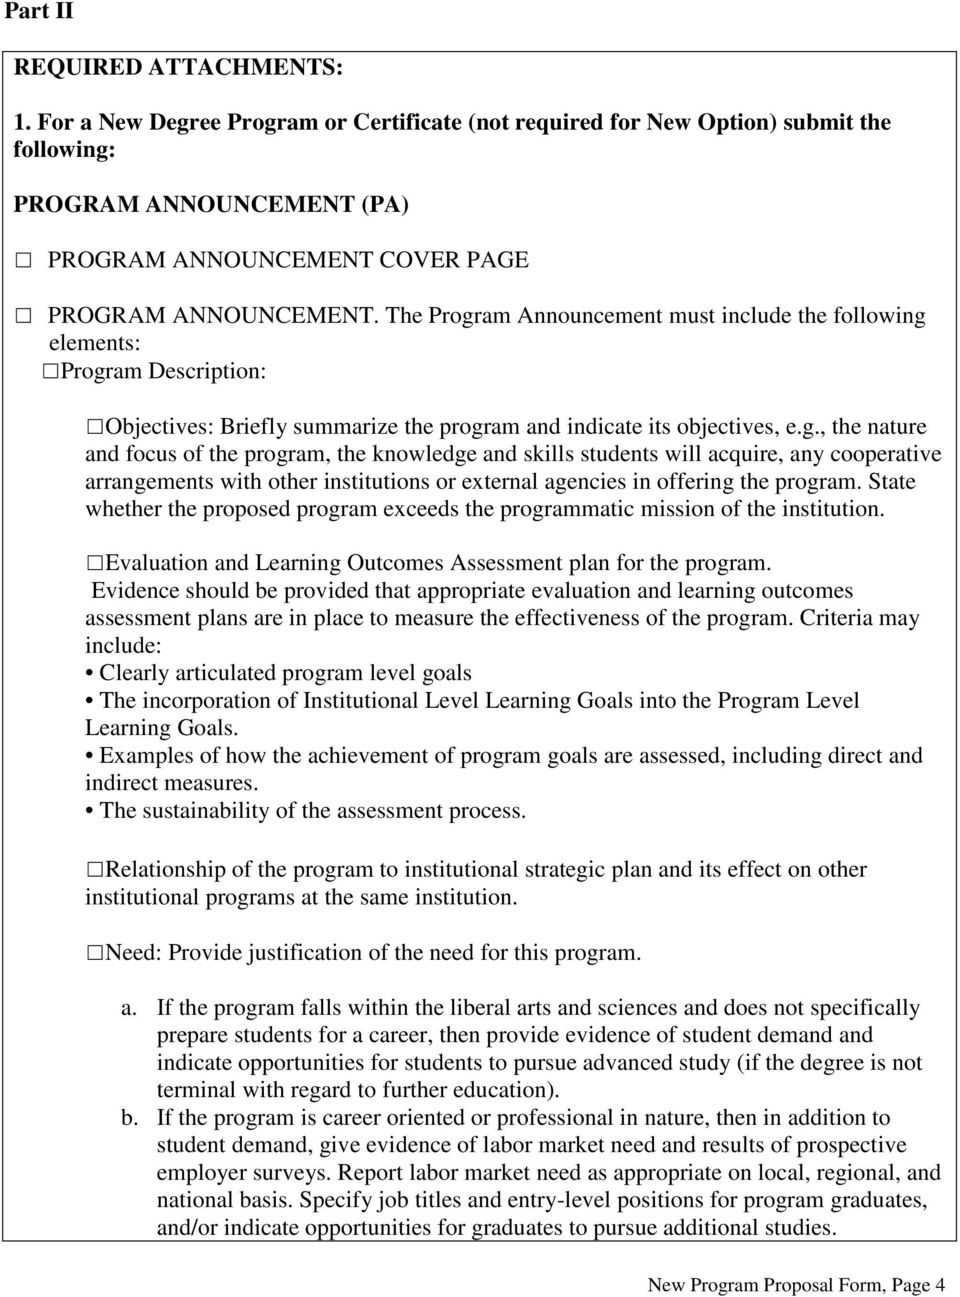 The Program Announcement must include the following elements: Program Description: Objectives: Briefly summarize the program and indicate its objectives, e.g., the nature and focus of the program, the knowledge and skills students will acquire, any cooperative arrangements with other institutions or external agencies in offering the program.